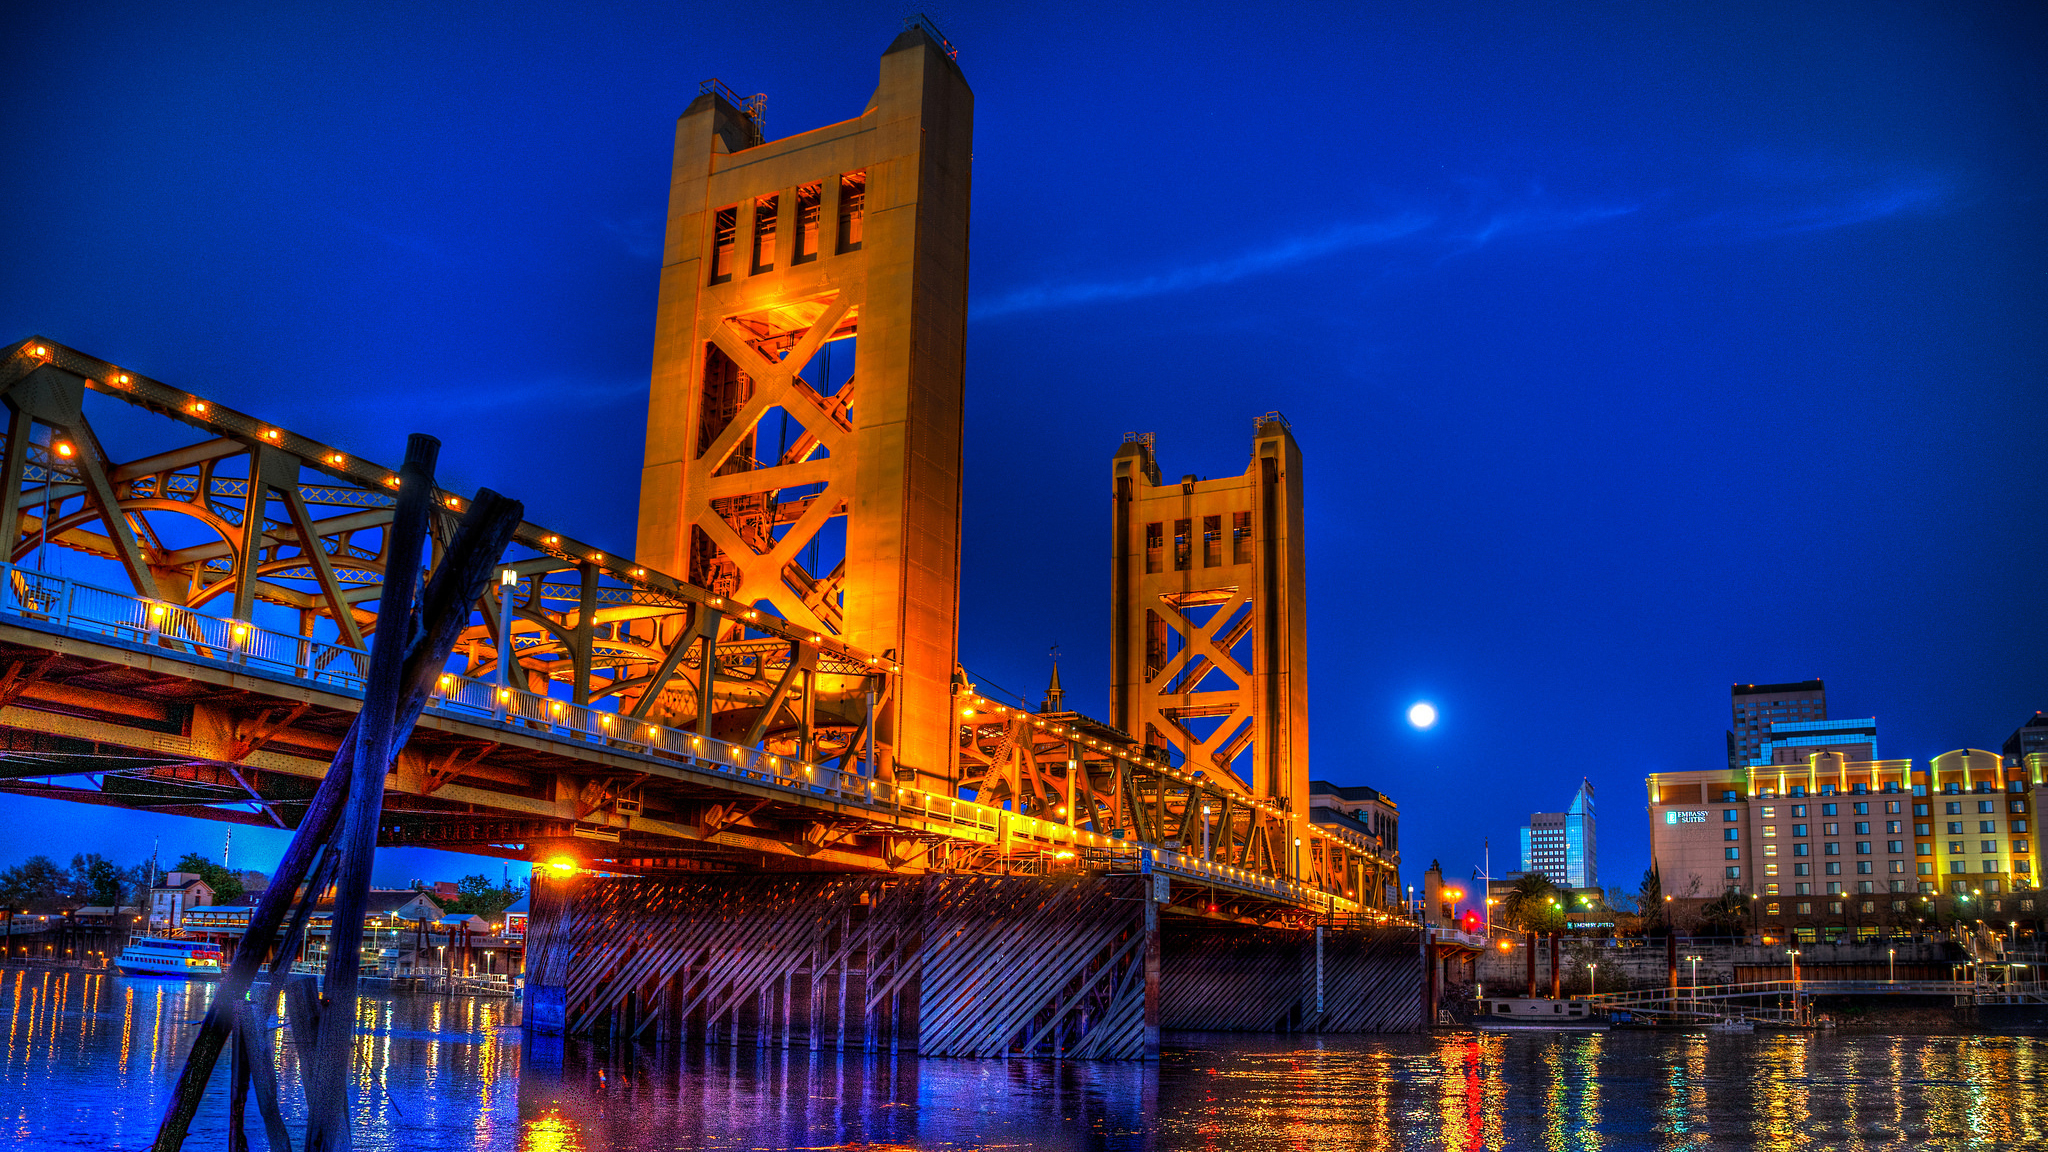 The yellow Tower Bridge is an iconic landmark of Sacramento. Beautiful colors and contrast at night, the tower bridge brings a certain light to any engagement session.